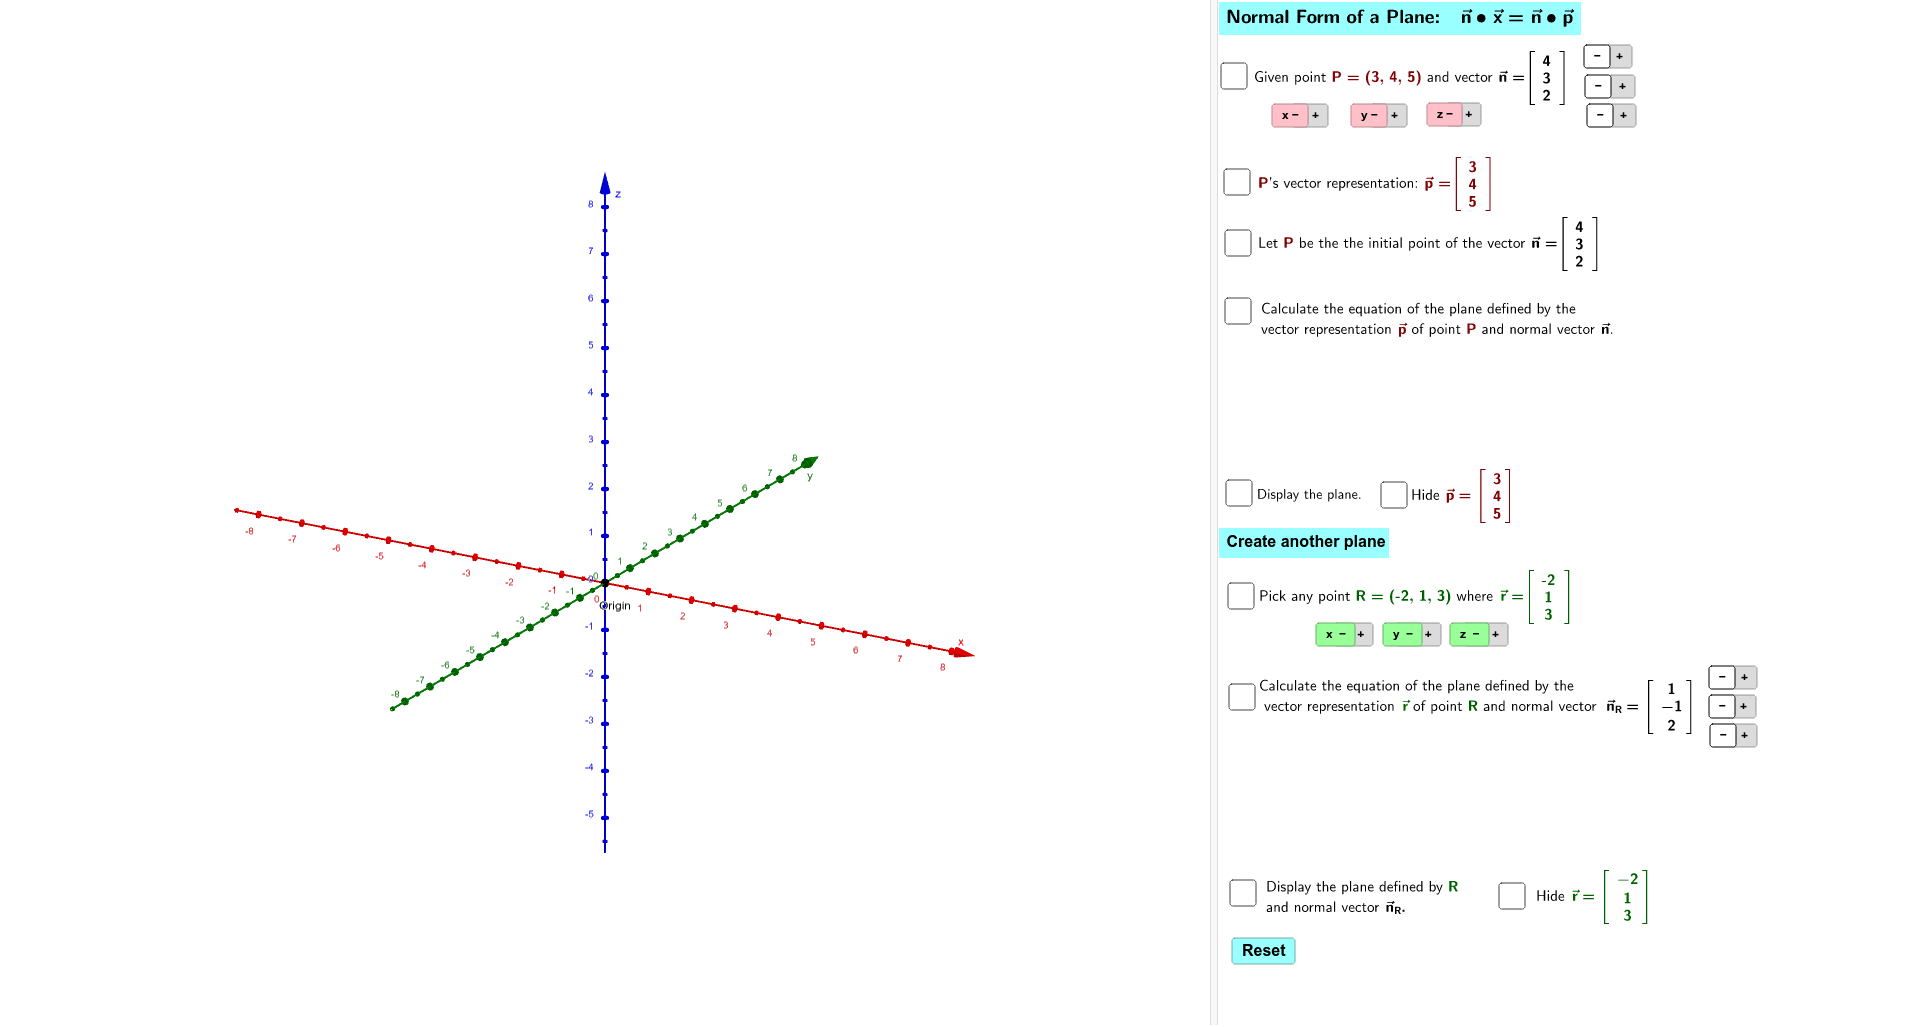 Applet - Normal Form of a Plane